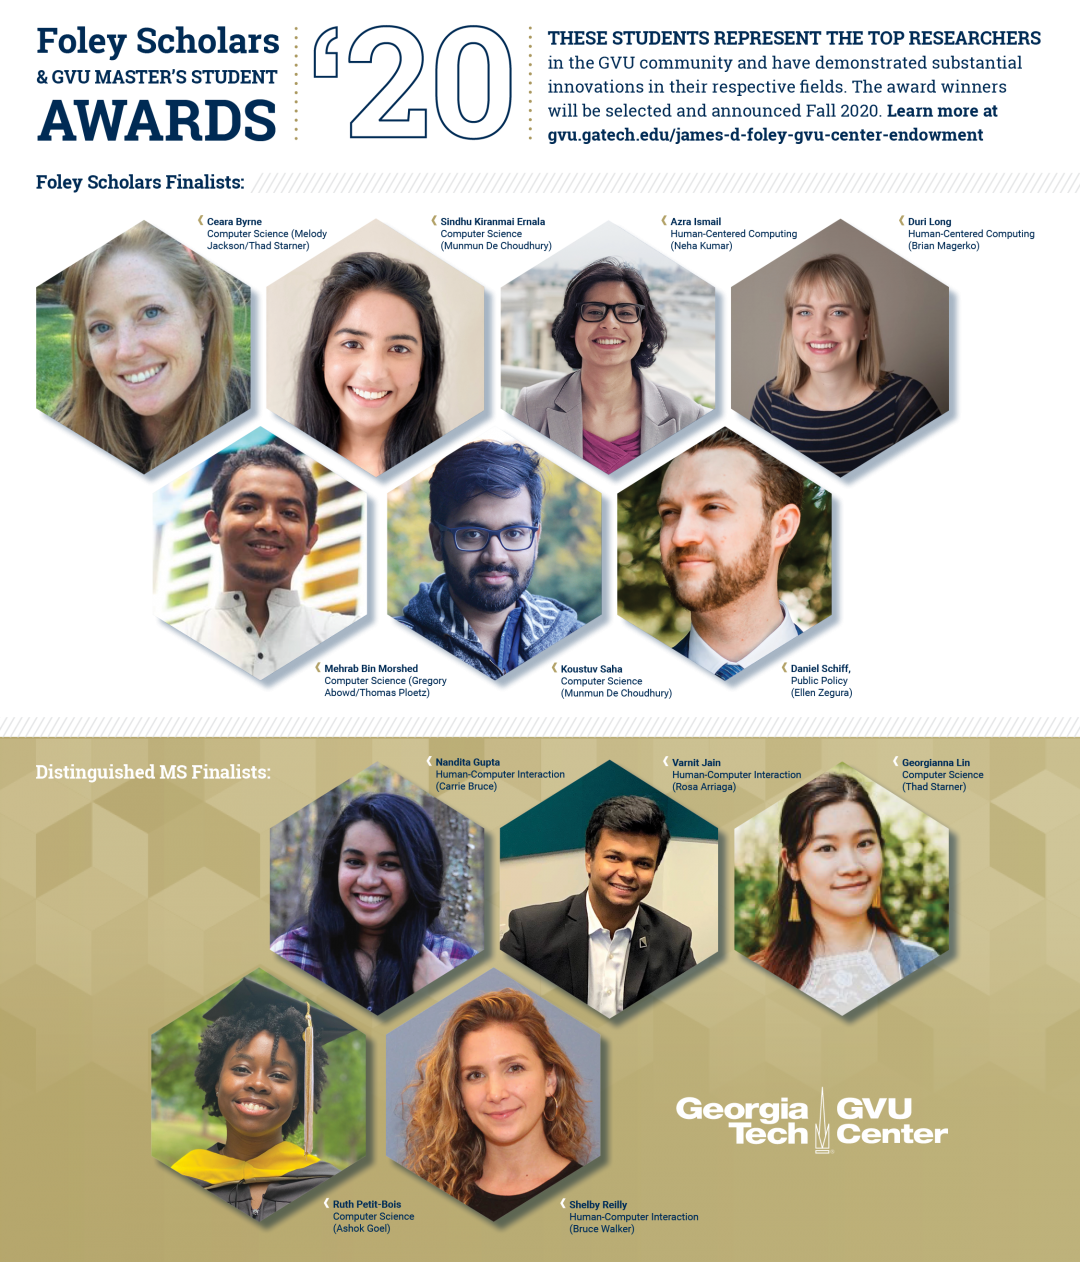 Graphic depicting 2020 nominees for Foloey Scholars and MS Student Awards at Georgia Tech's GVU Center